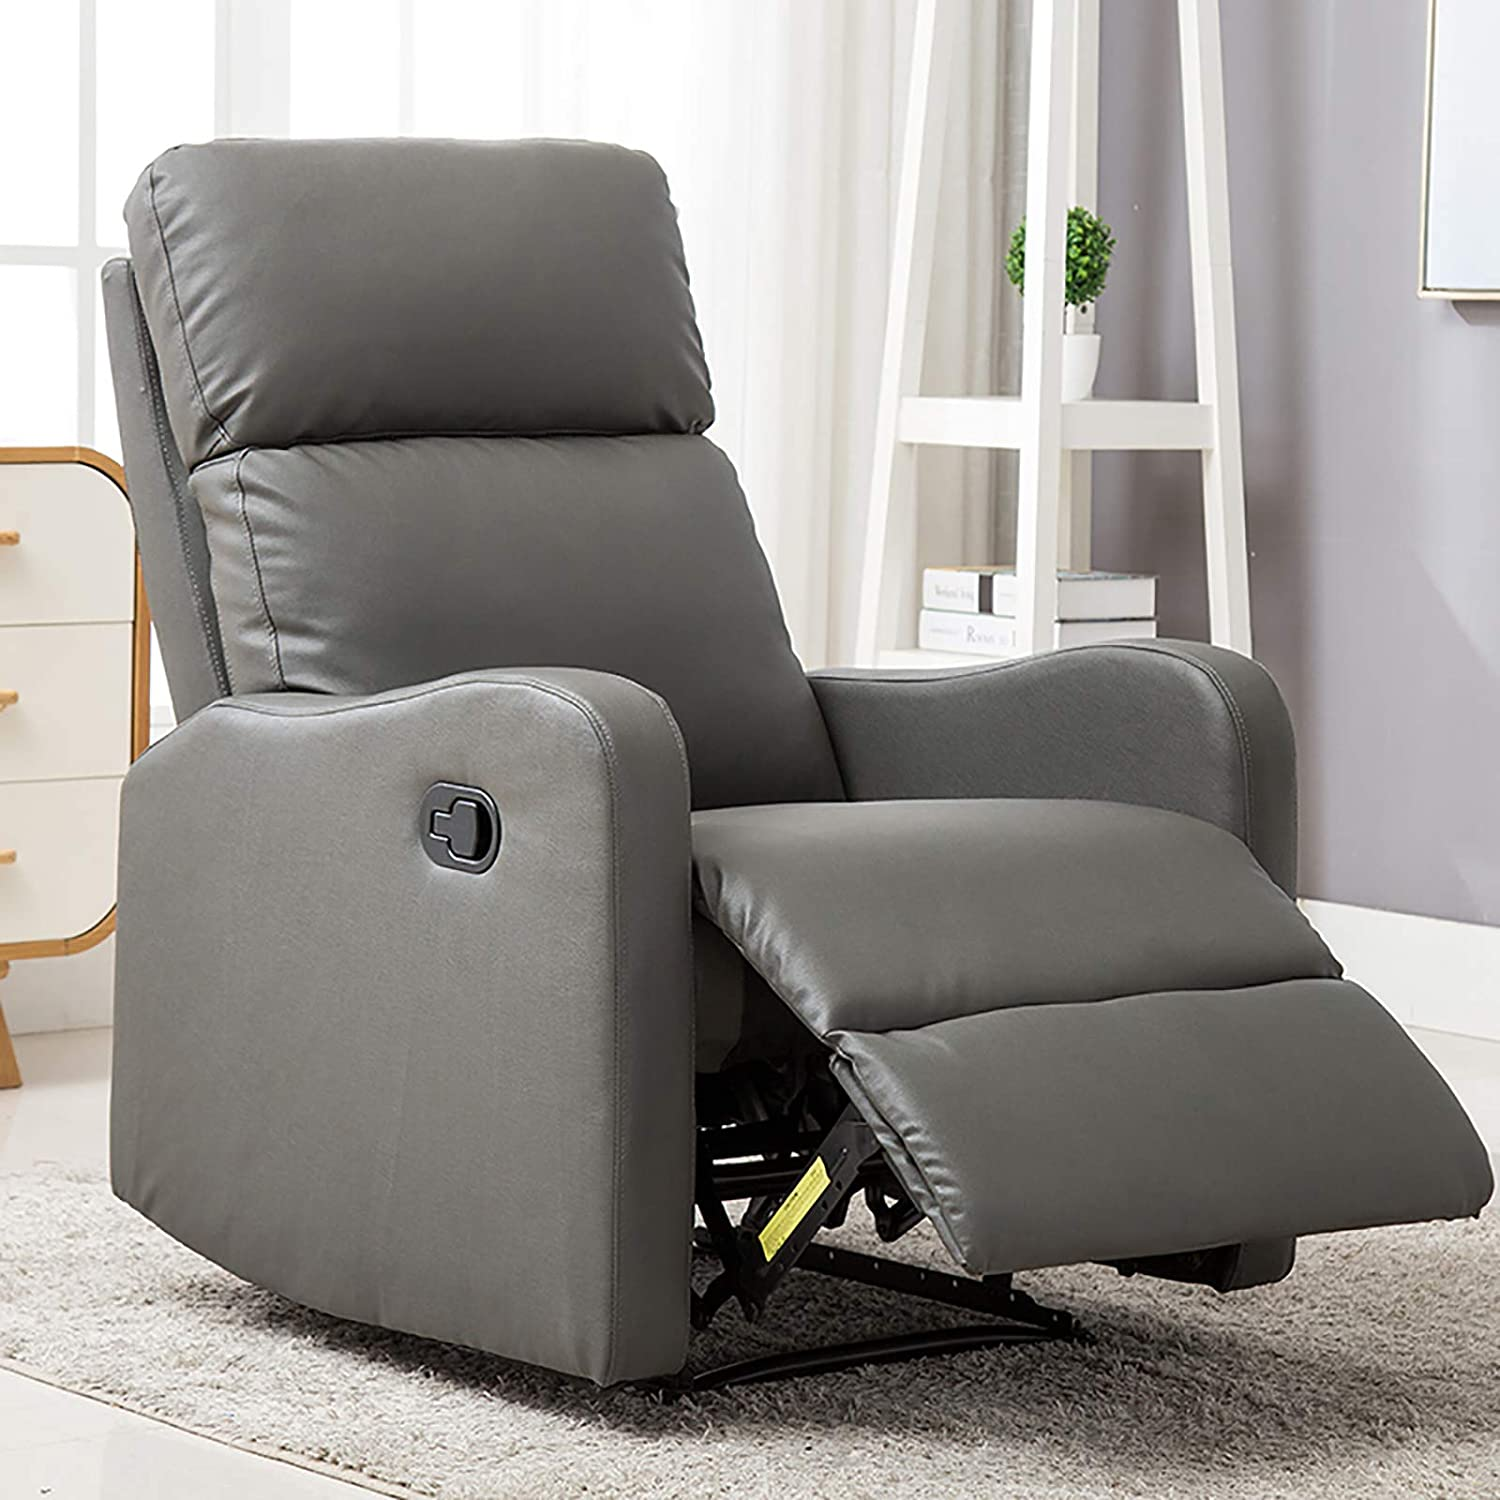 ANJ recliner for small spaces